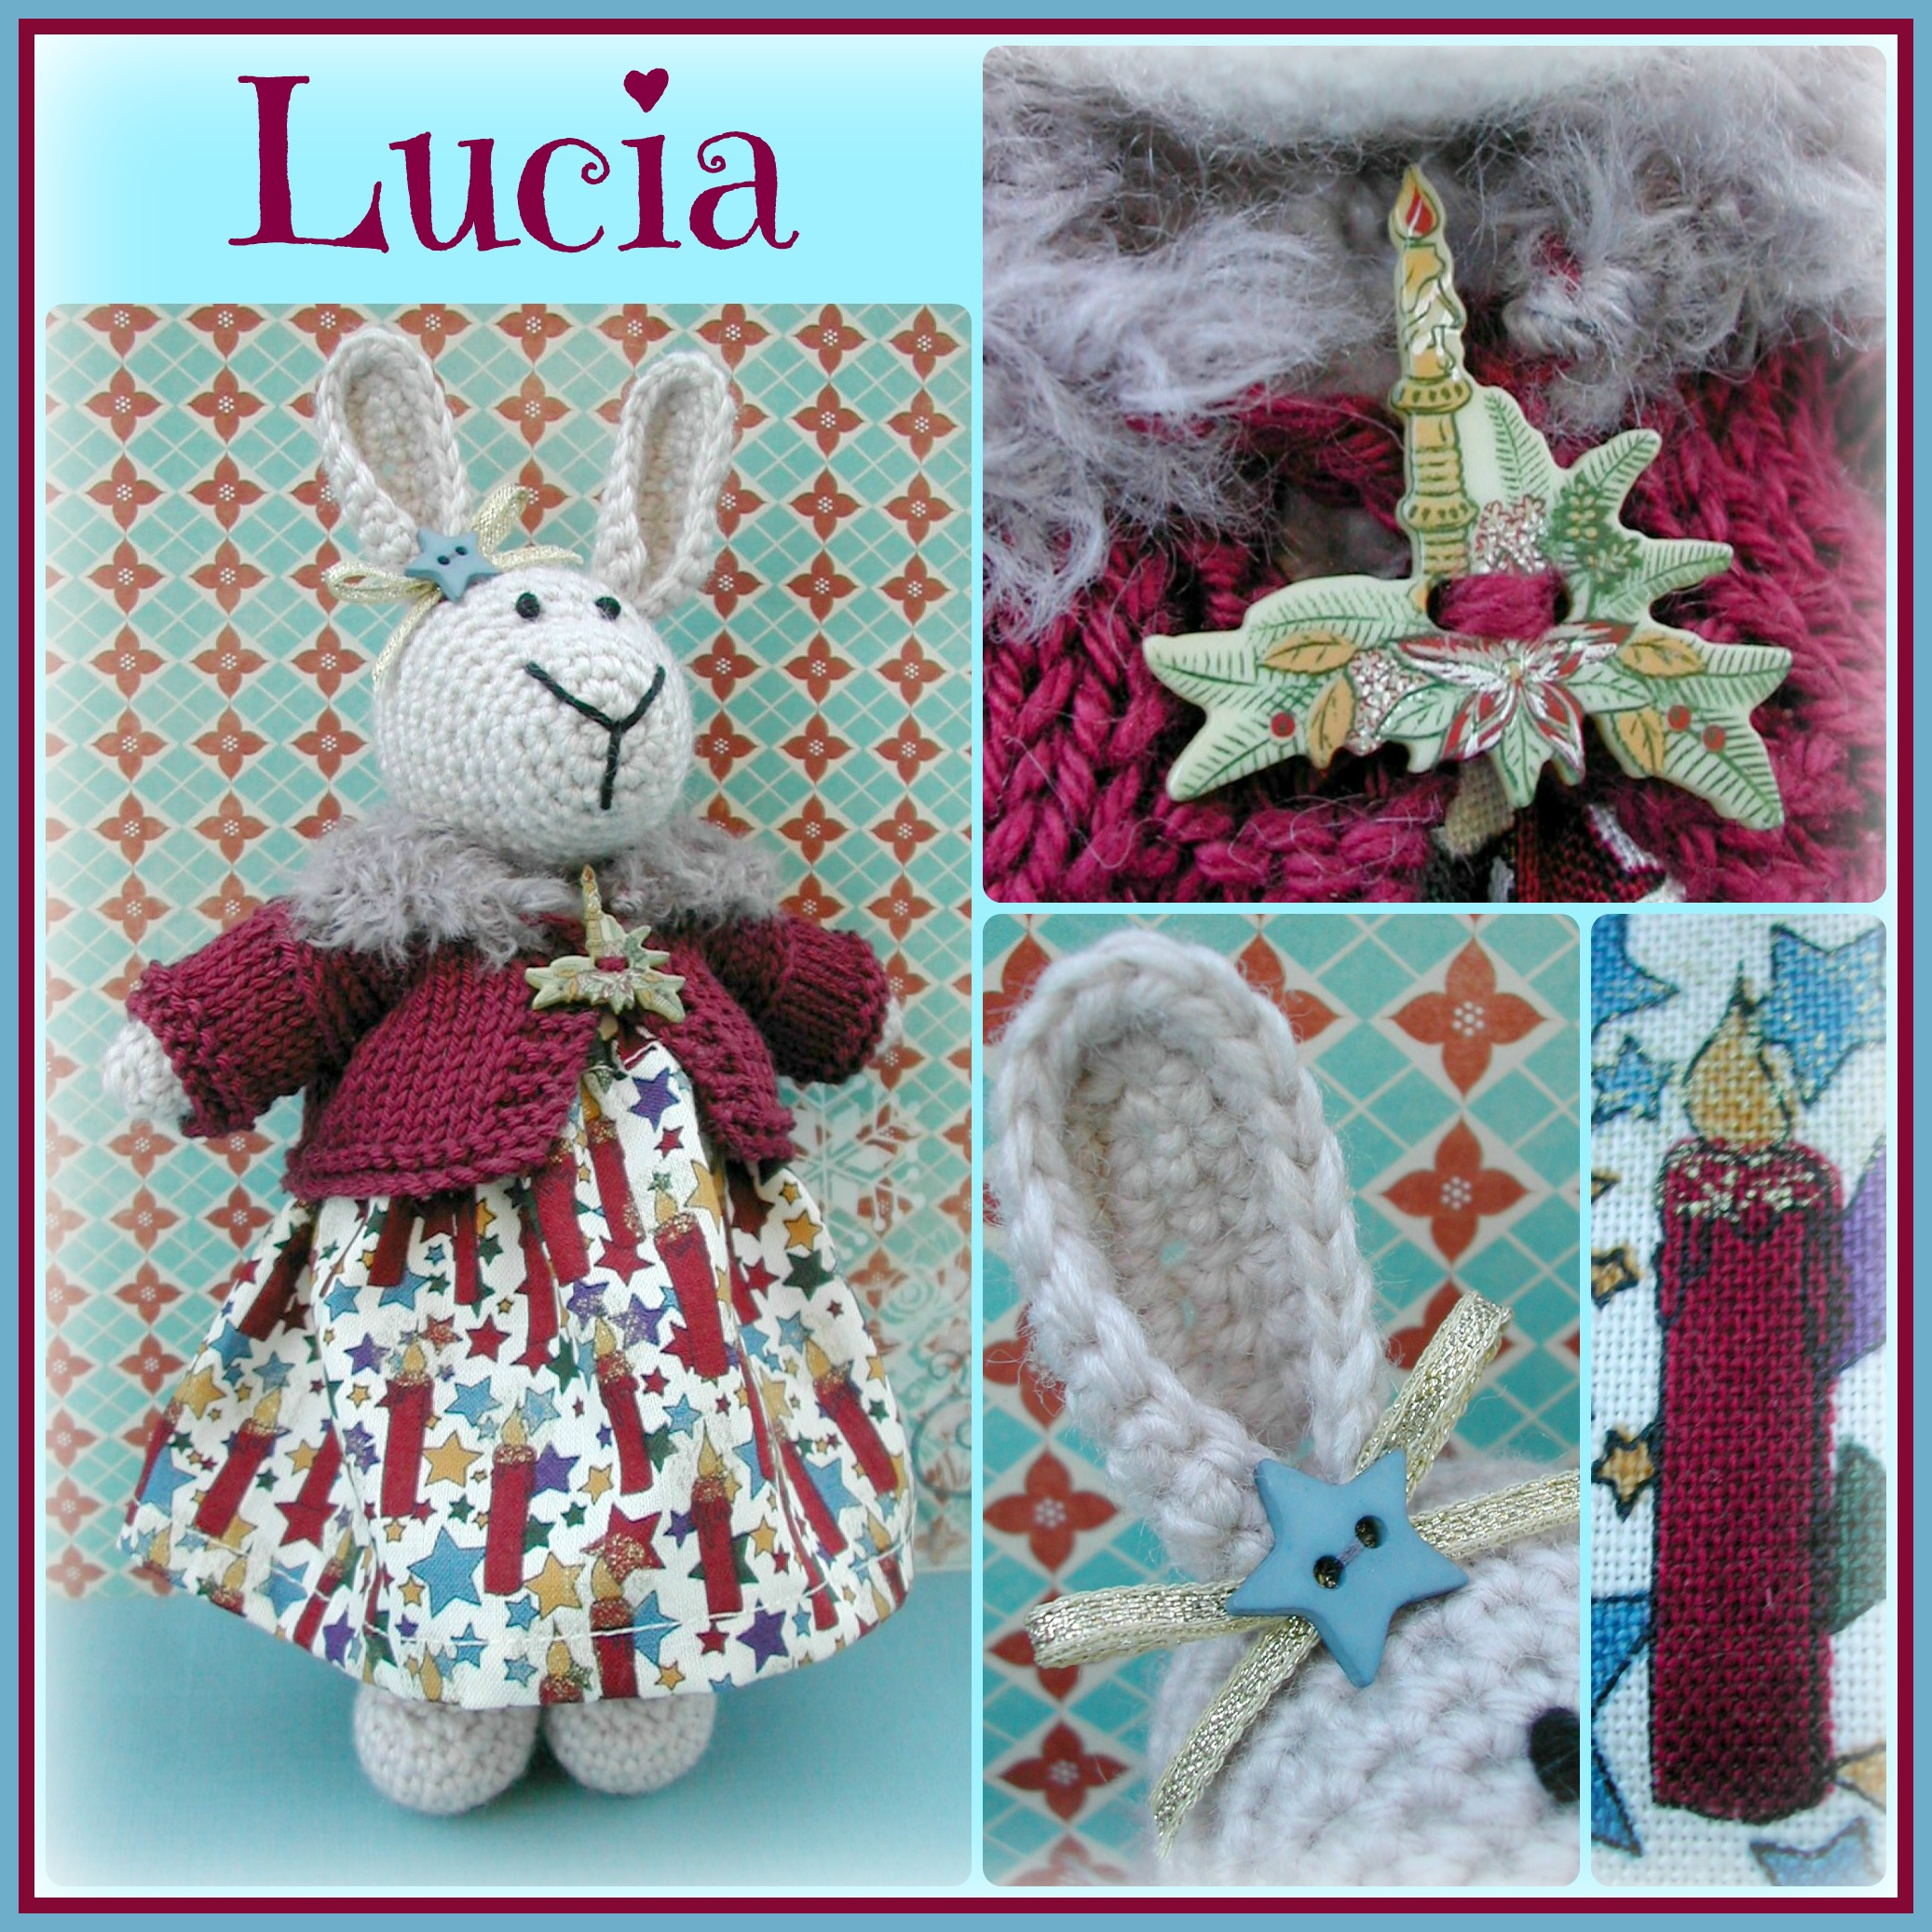 Lucia Collage